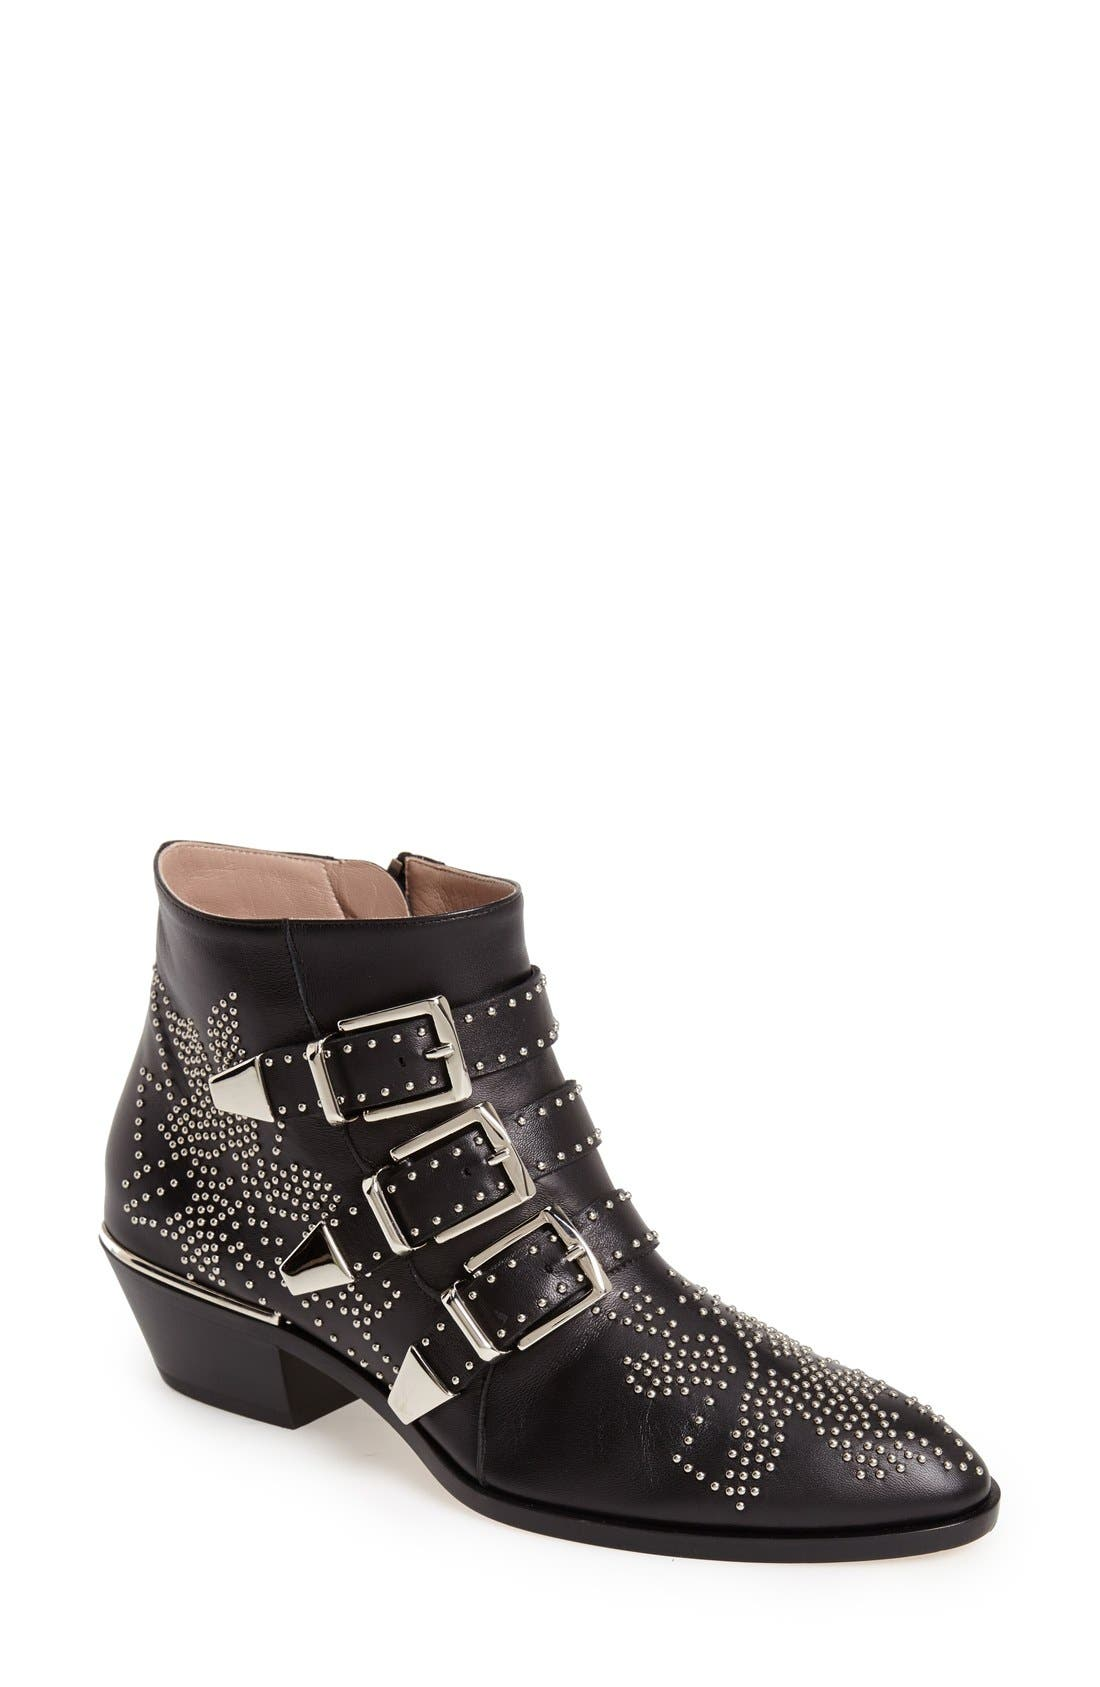 'Suzanna' Stud Bootie,                             Main thumbnail 1, color,                             001